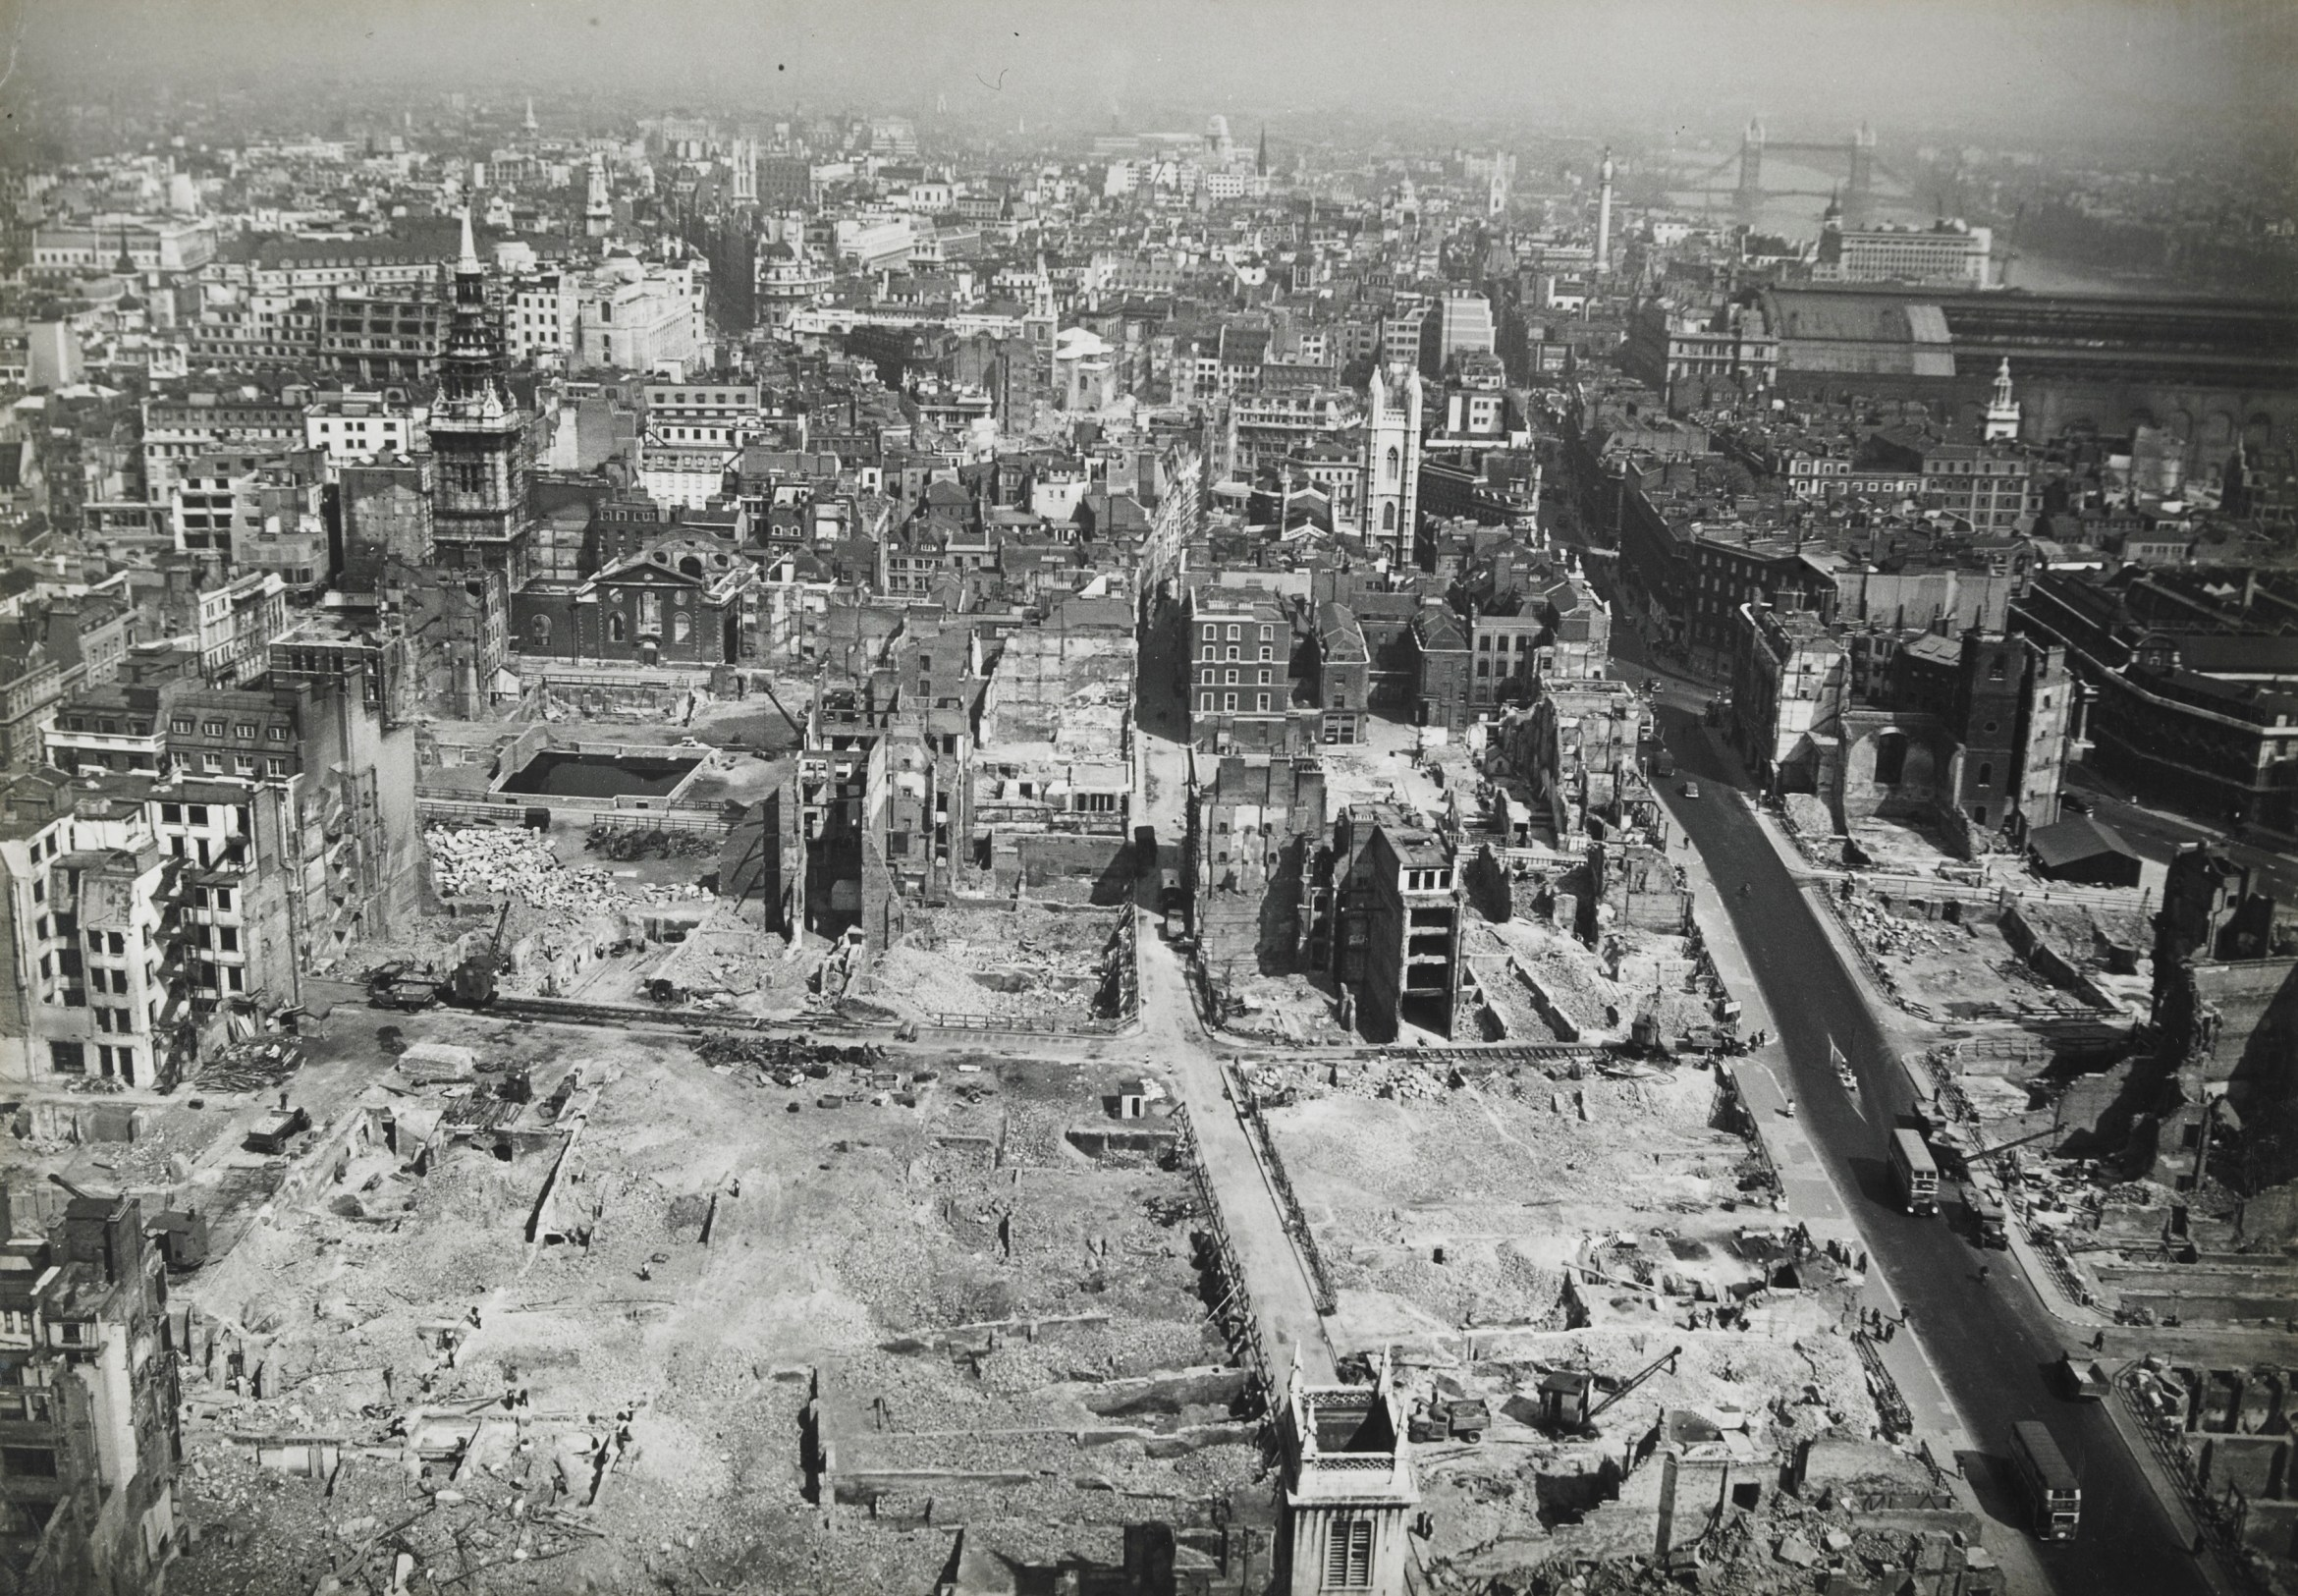 View from St. Paul%27s to the East%2c c.1945%2c Arthur Cross and Fred Tibbs.jpg